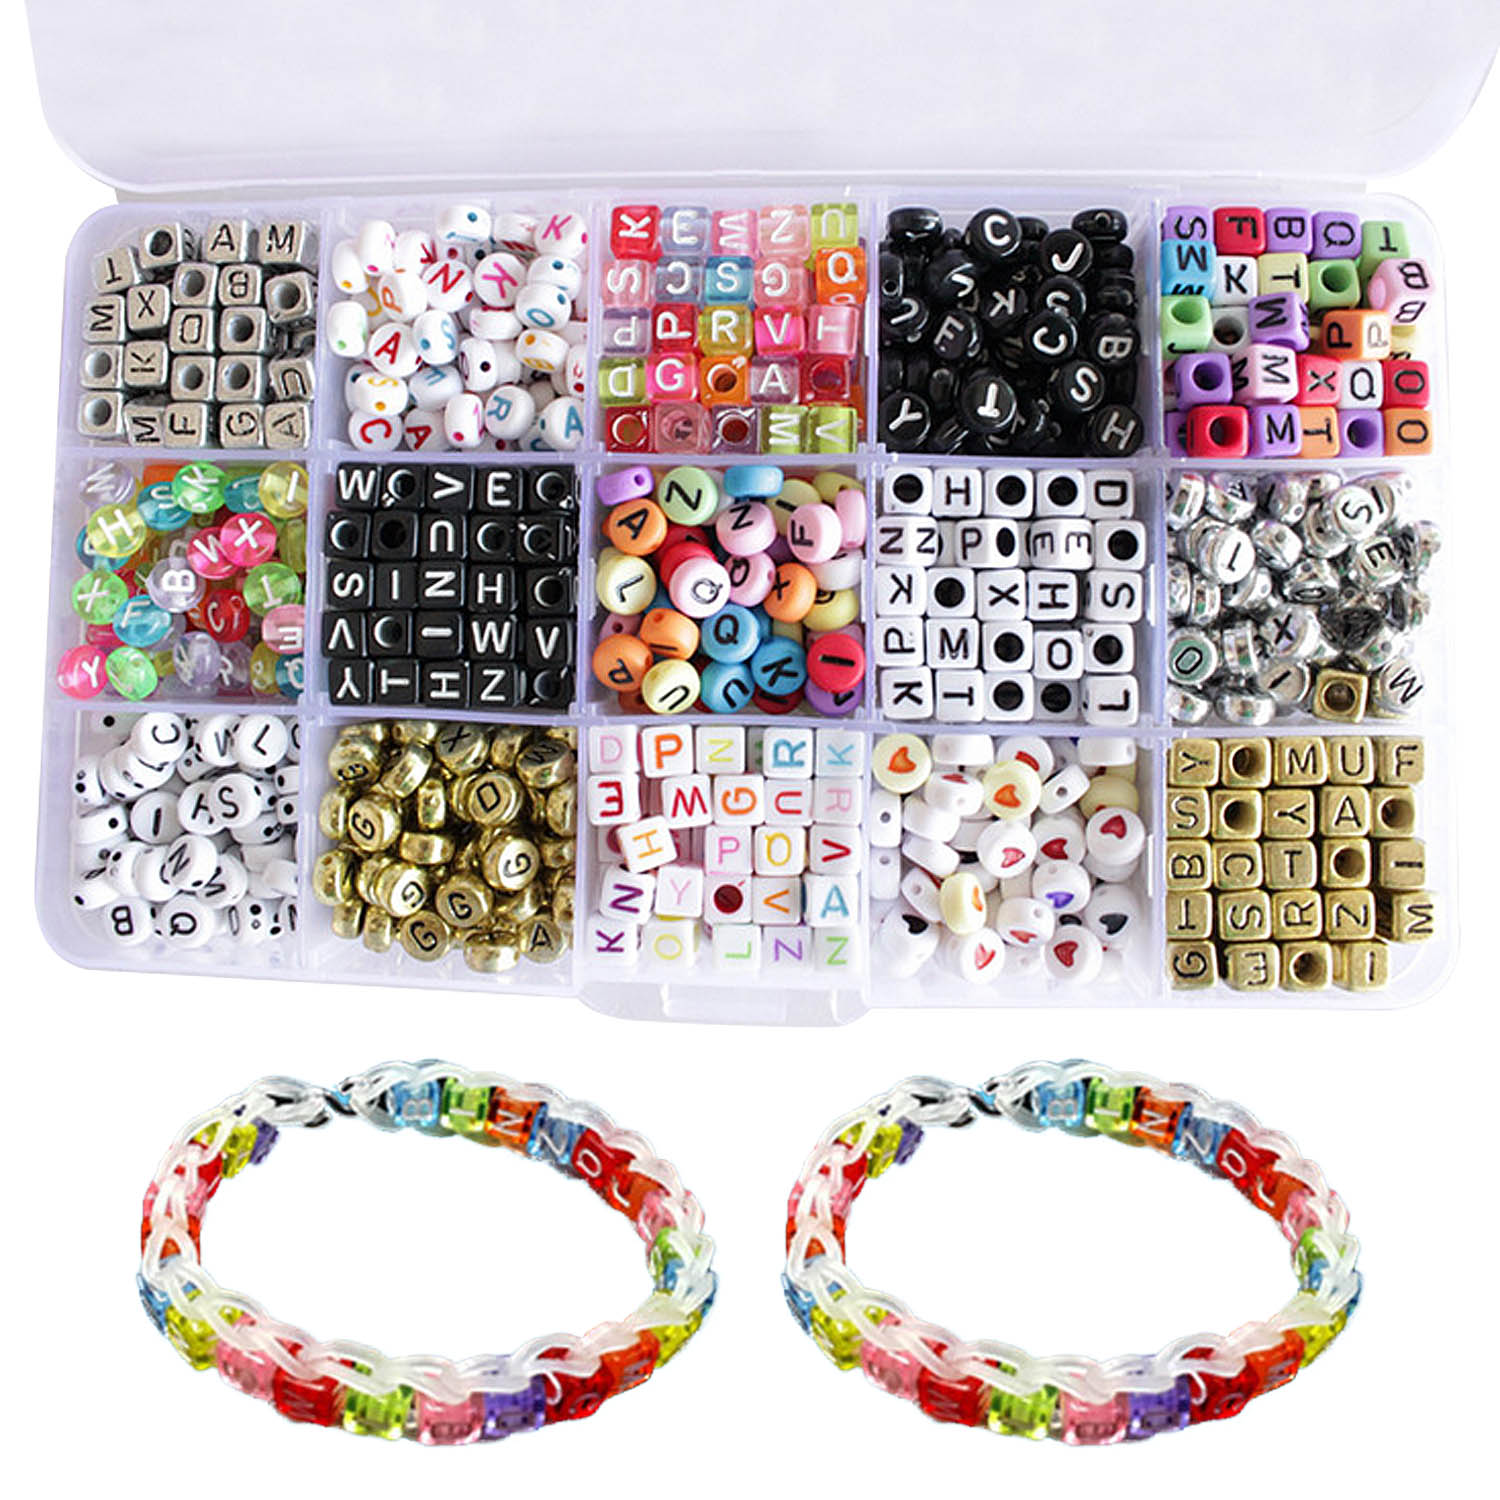 Kids Girls 1100PCS Colorful Acrylic Cube Round Alphabet Letter Loose Beads DIY Craft Bracelet Jewelry Making Accessories Toy